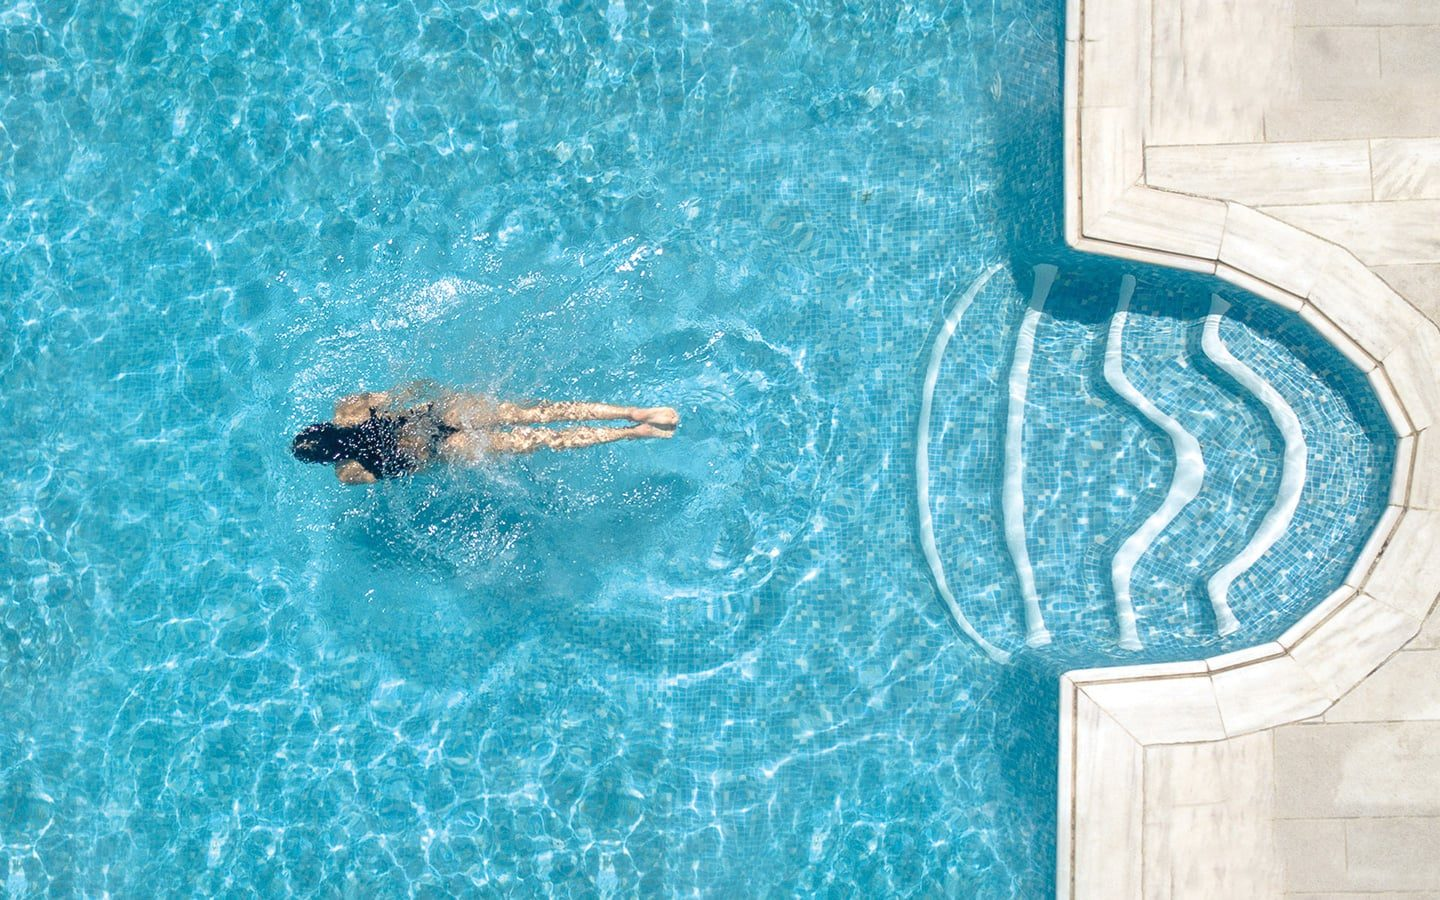 Overhead view of a lady swimming in the crystal clear pool in Harmony Hotel.